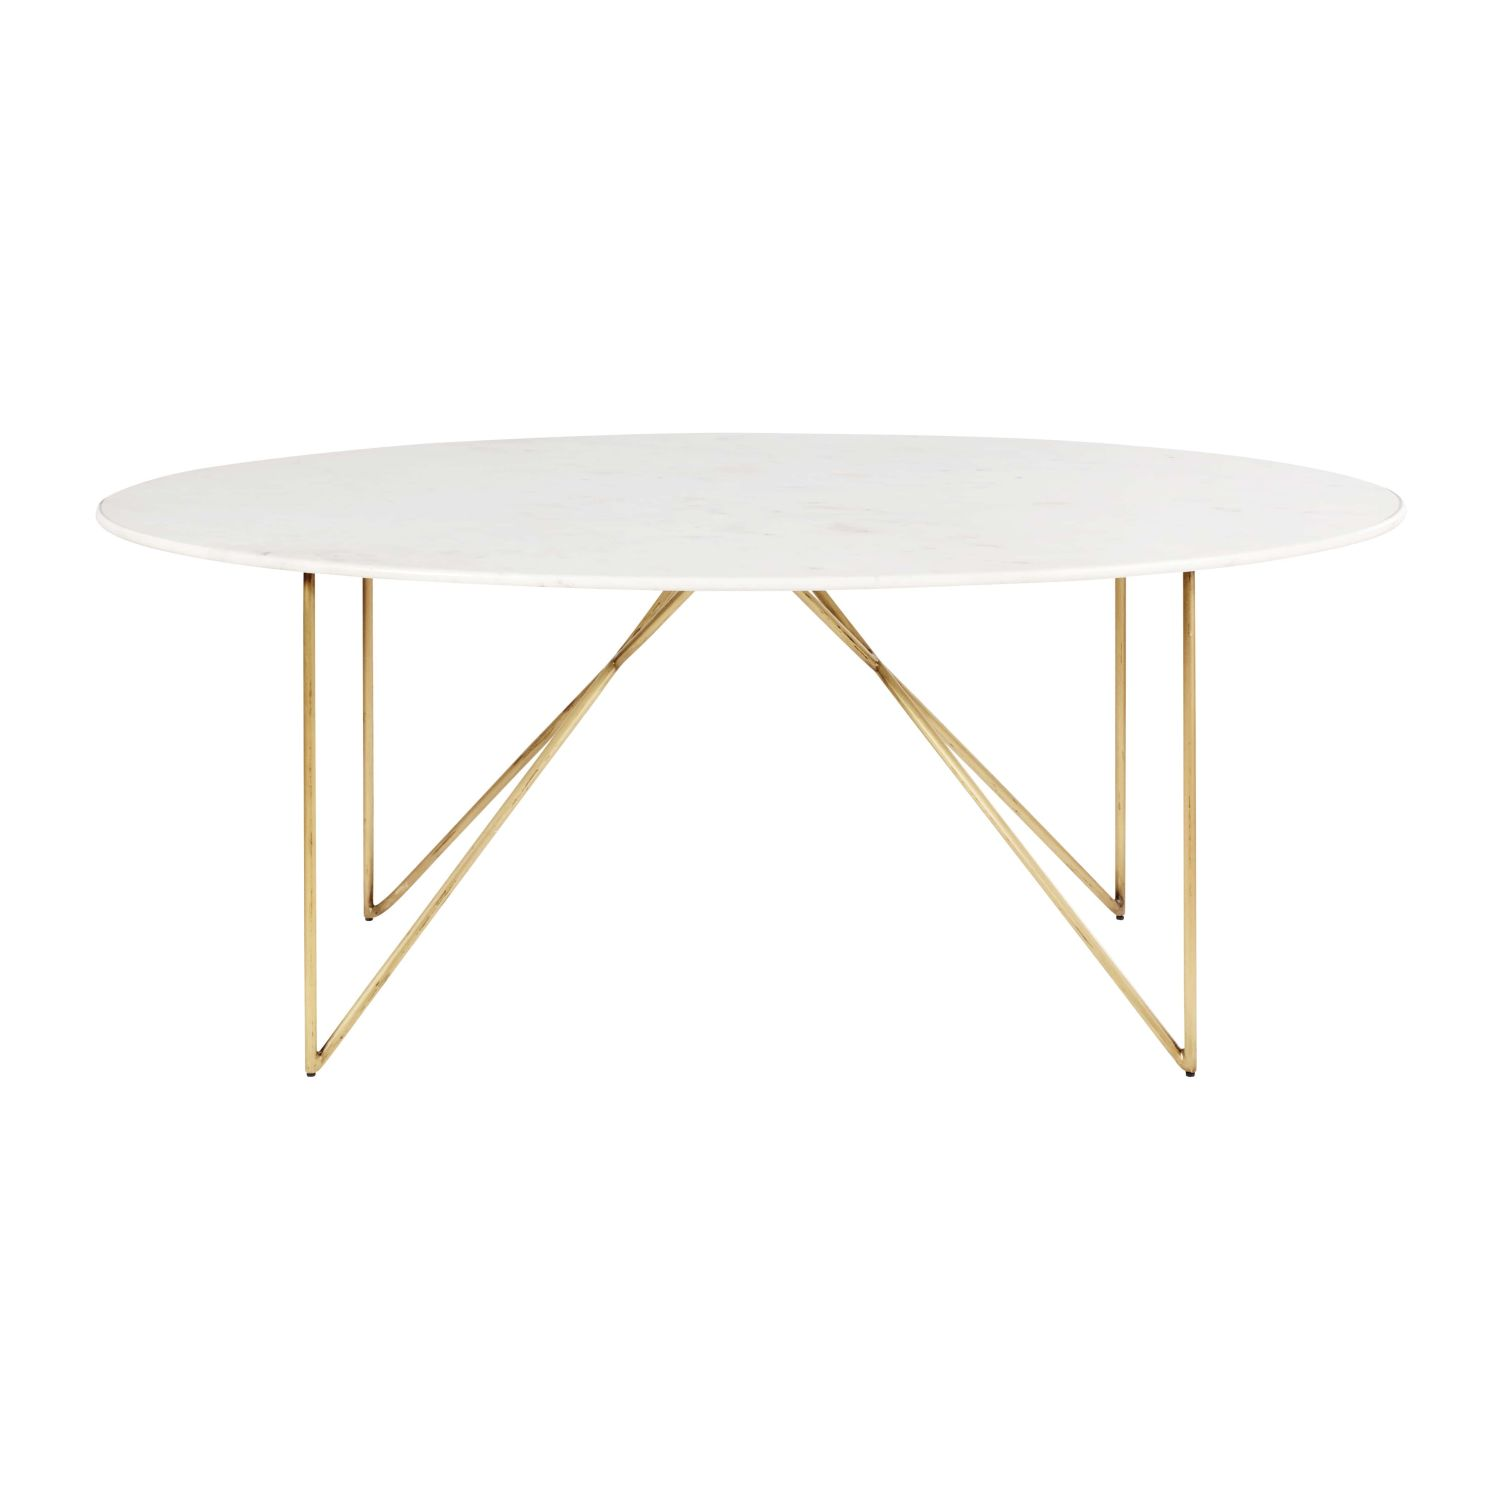 Gold Iron And White Marble 4 6 Seater Dining Table W 200 Cm Izmir Maisons Du Monde